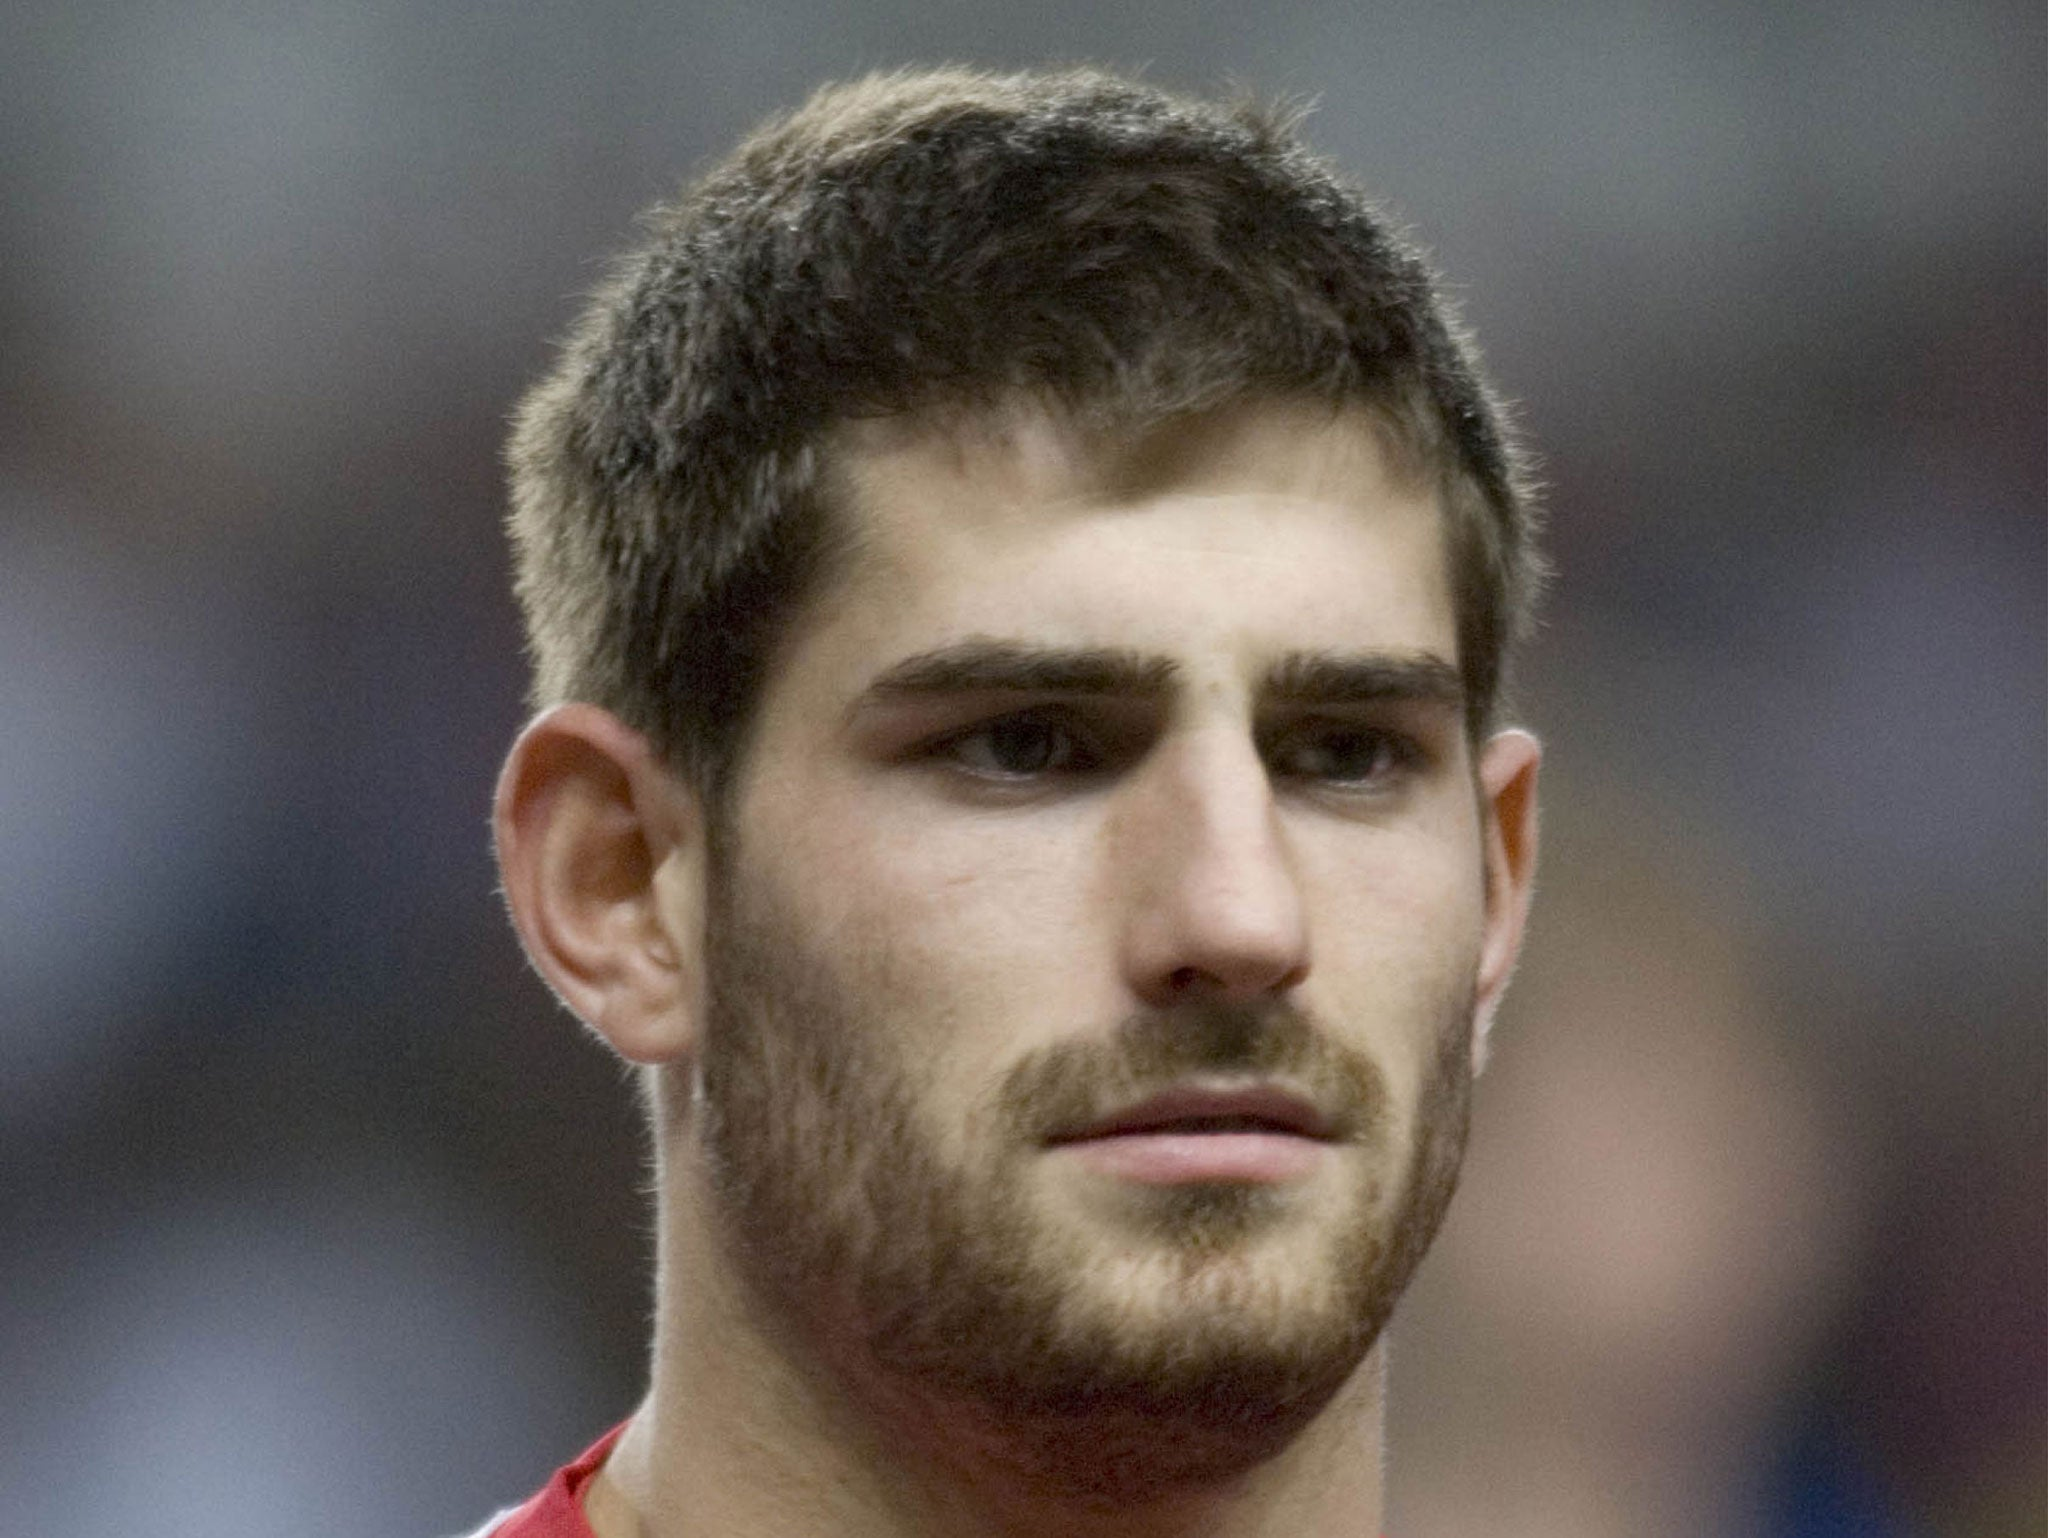 ched evans Ched evans, who served more than two years in prison, will face a re-trial after the court of appeal in london quashed the original charges.